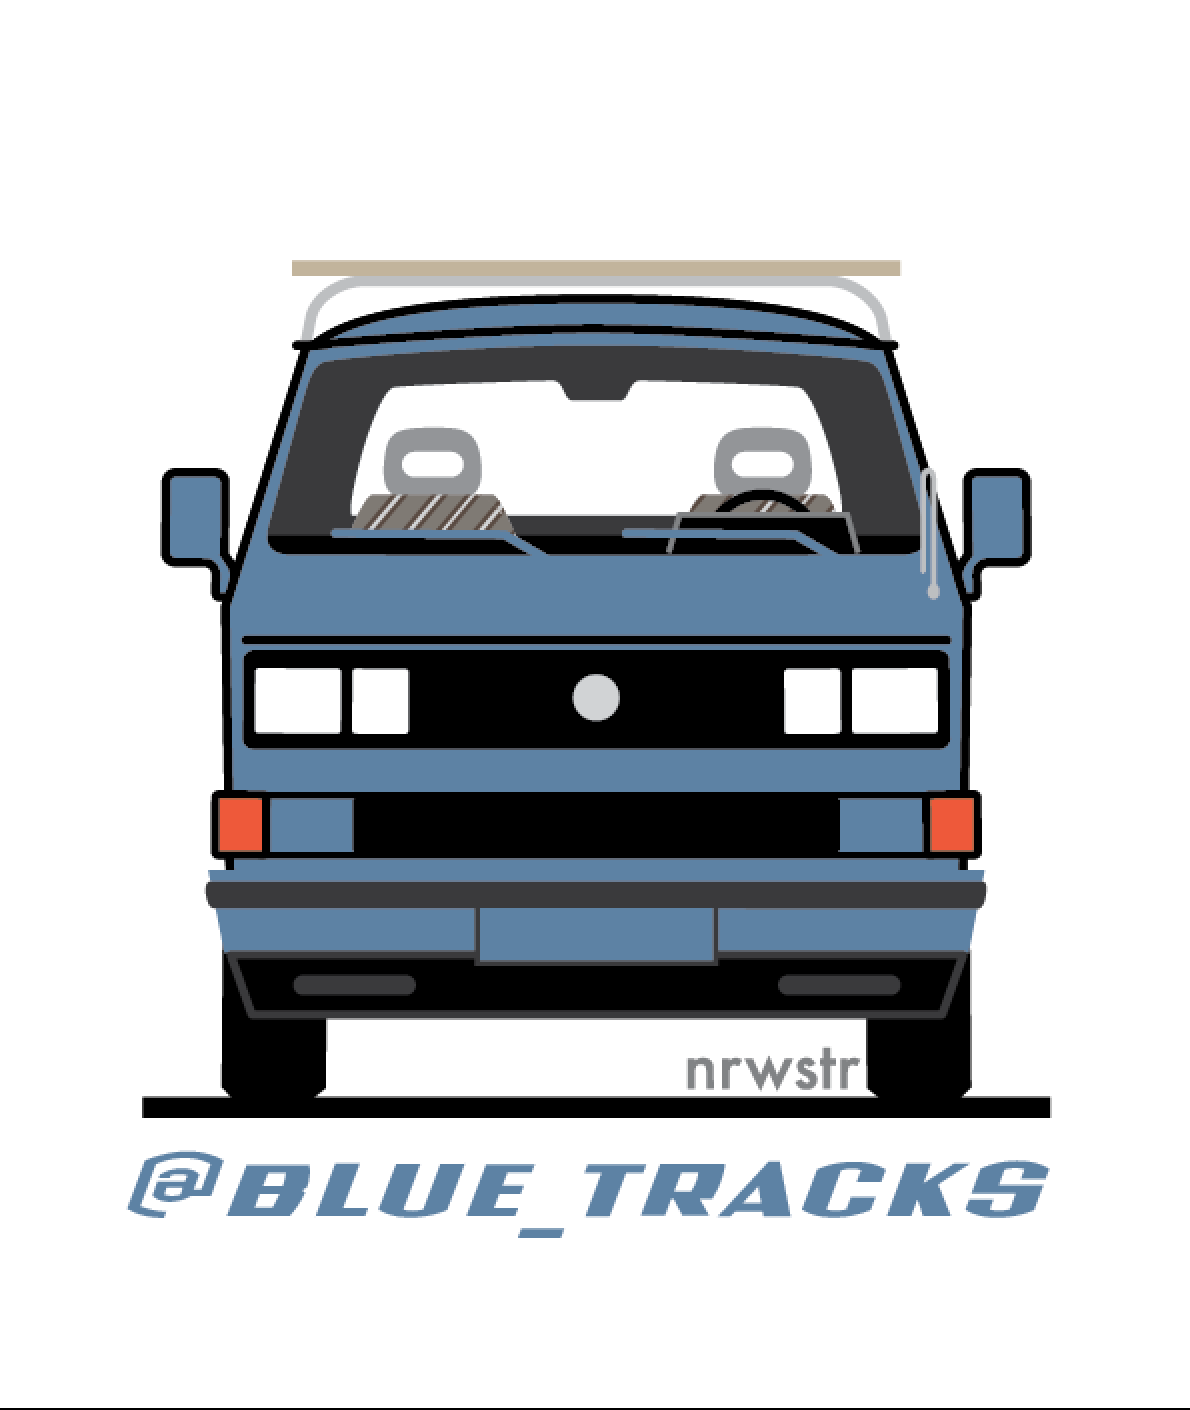 comm-blue_tracks front view.png